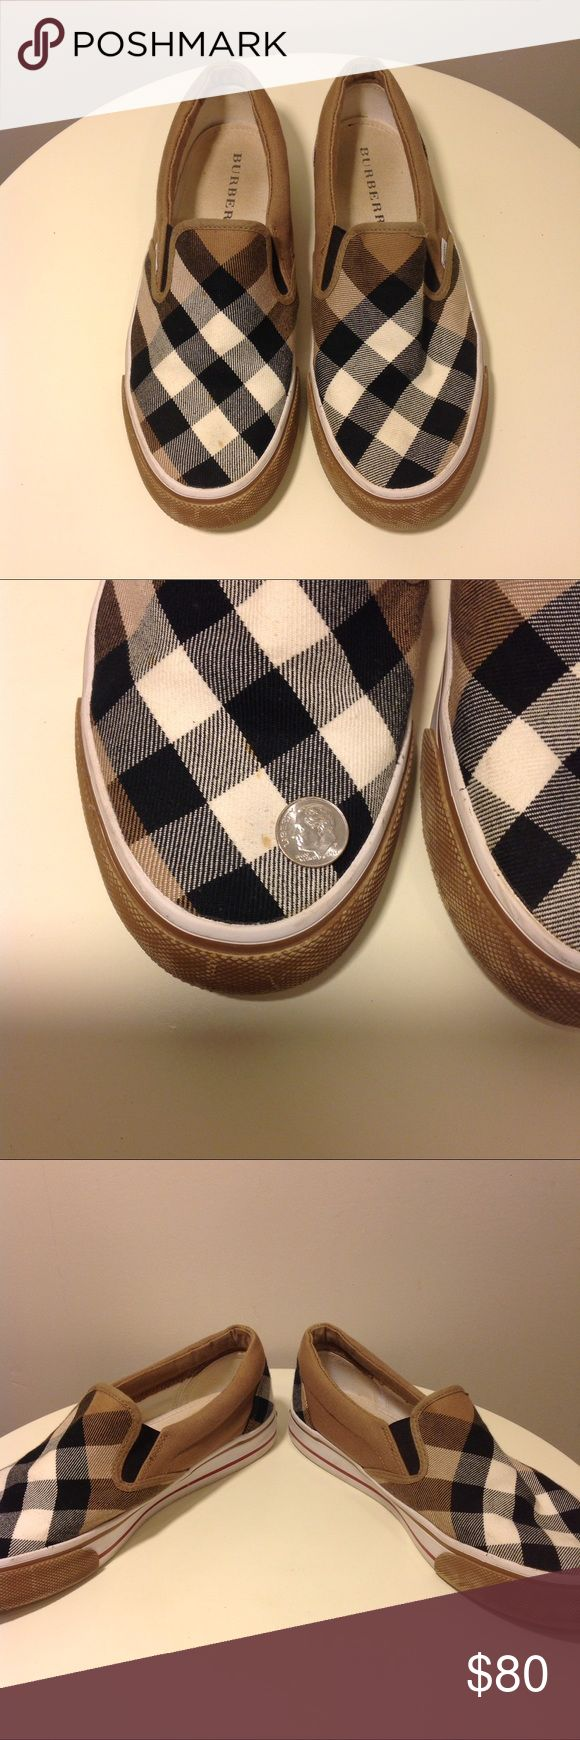 """Burberry Nova Check Canvas Slip-On Sneakers US 8 Burberry Nova Check Canvas Slip-On Sneakers US 8 EU 39  Authentic; good-fair pre-owned condition  Flaws of note: Right Sneaker has small splatter spots on front (see photo with dime) Left sneaker rubber """"Burberry"""" tab on back of shoe broke due to rubbing, but was repaired.  Black, white, beige Burberry Shoes Sneakers"""